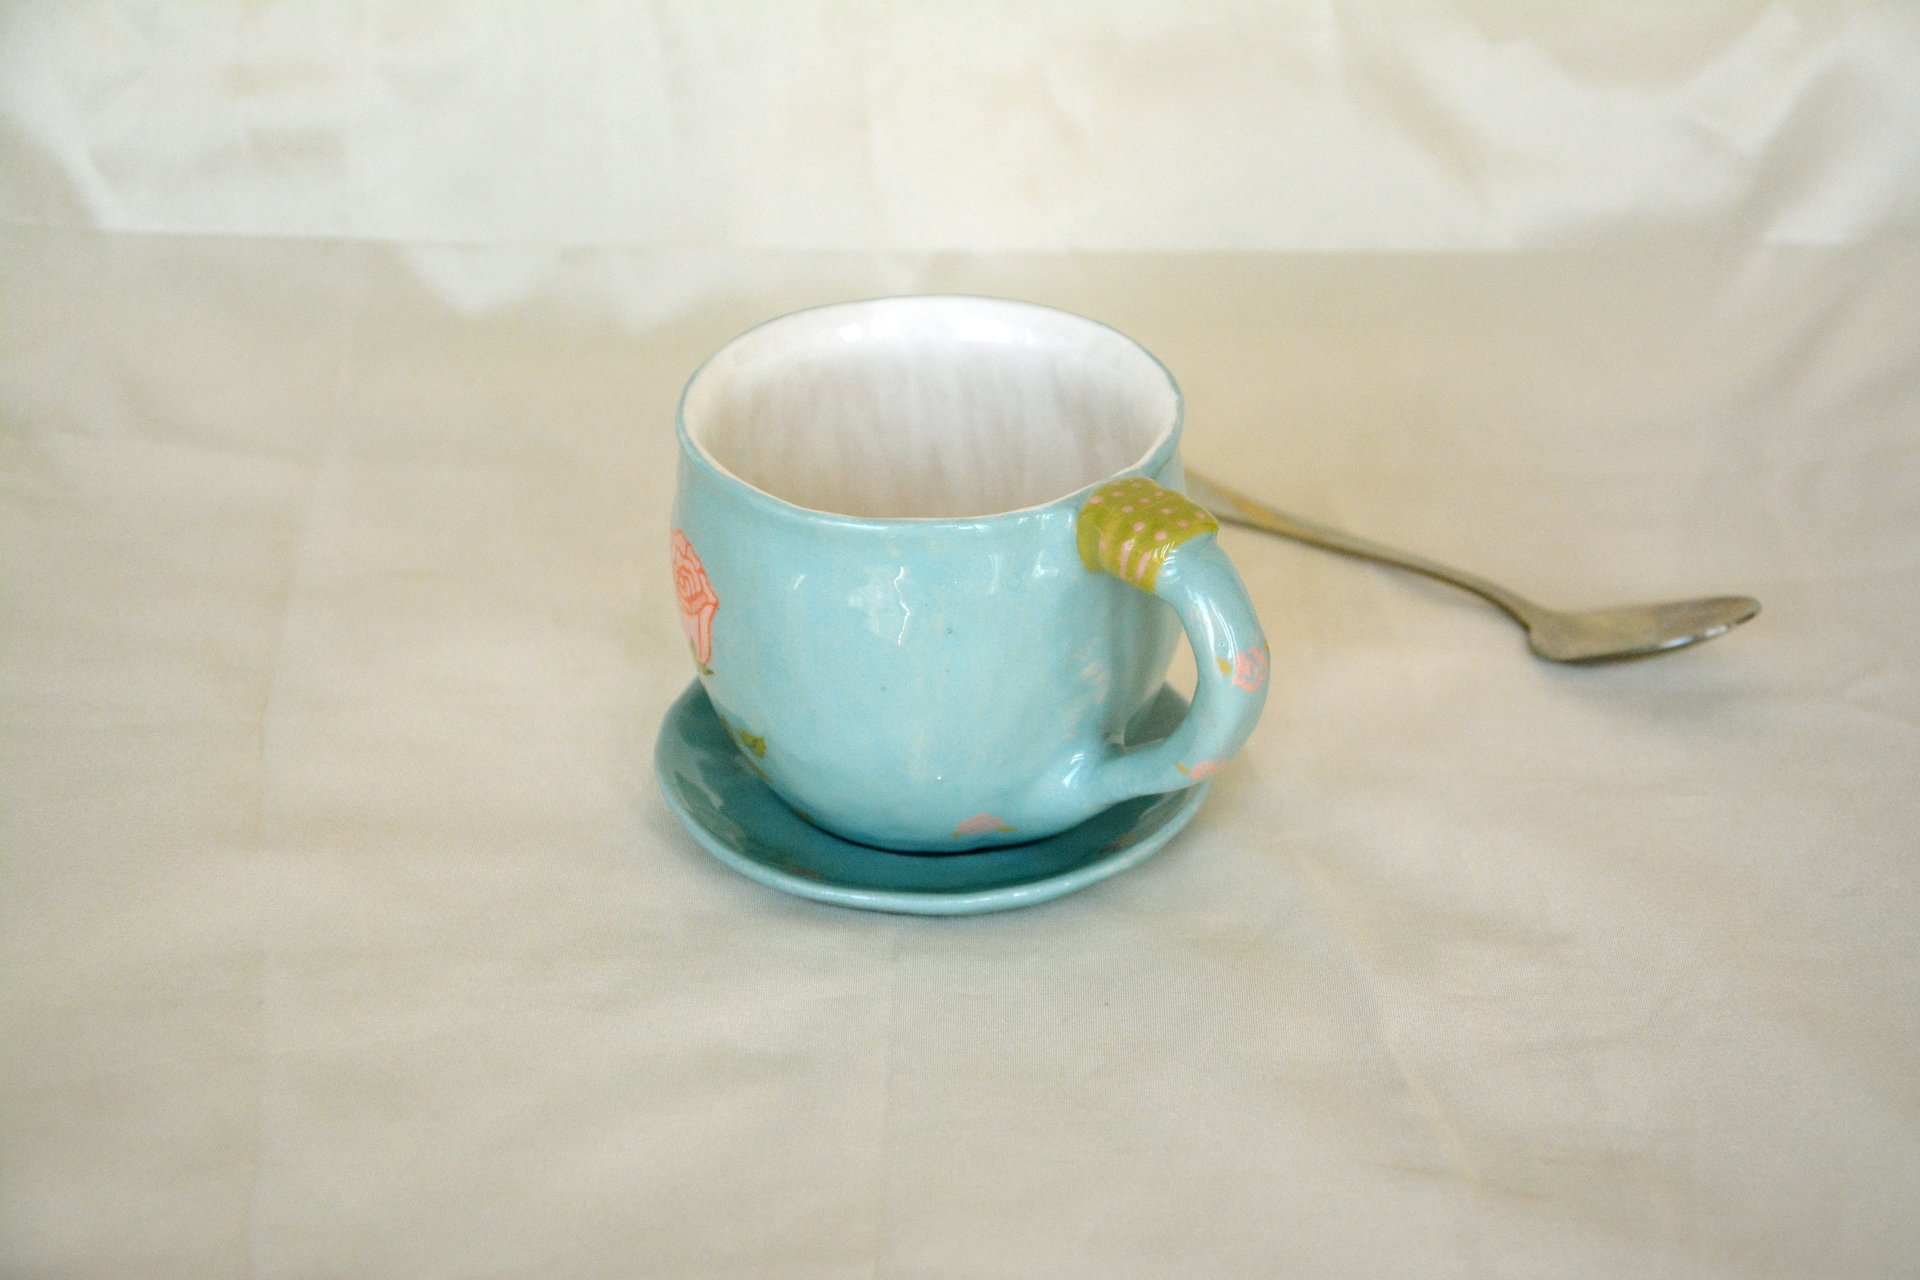 Blue cup with a picture of Sleeping bunny - Cups, glasses, mugs, height - 7 cm, volume - 250 ml, photo 3 of 3.